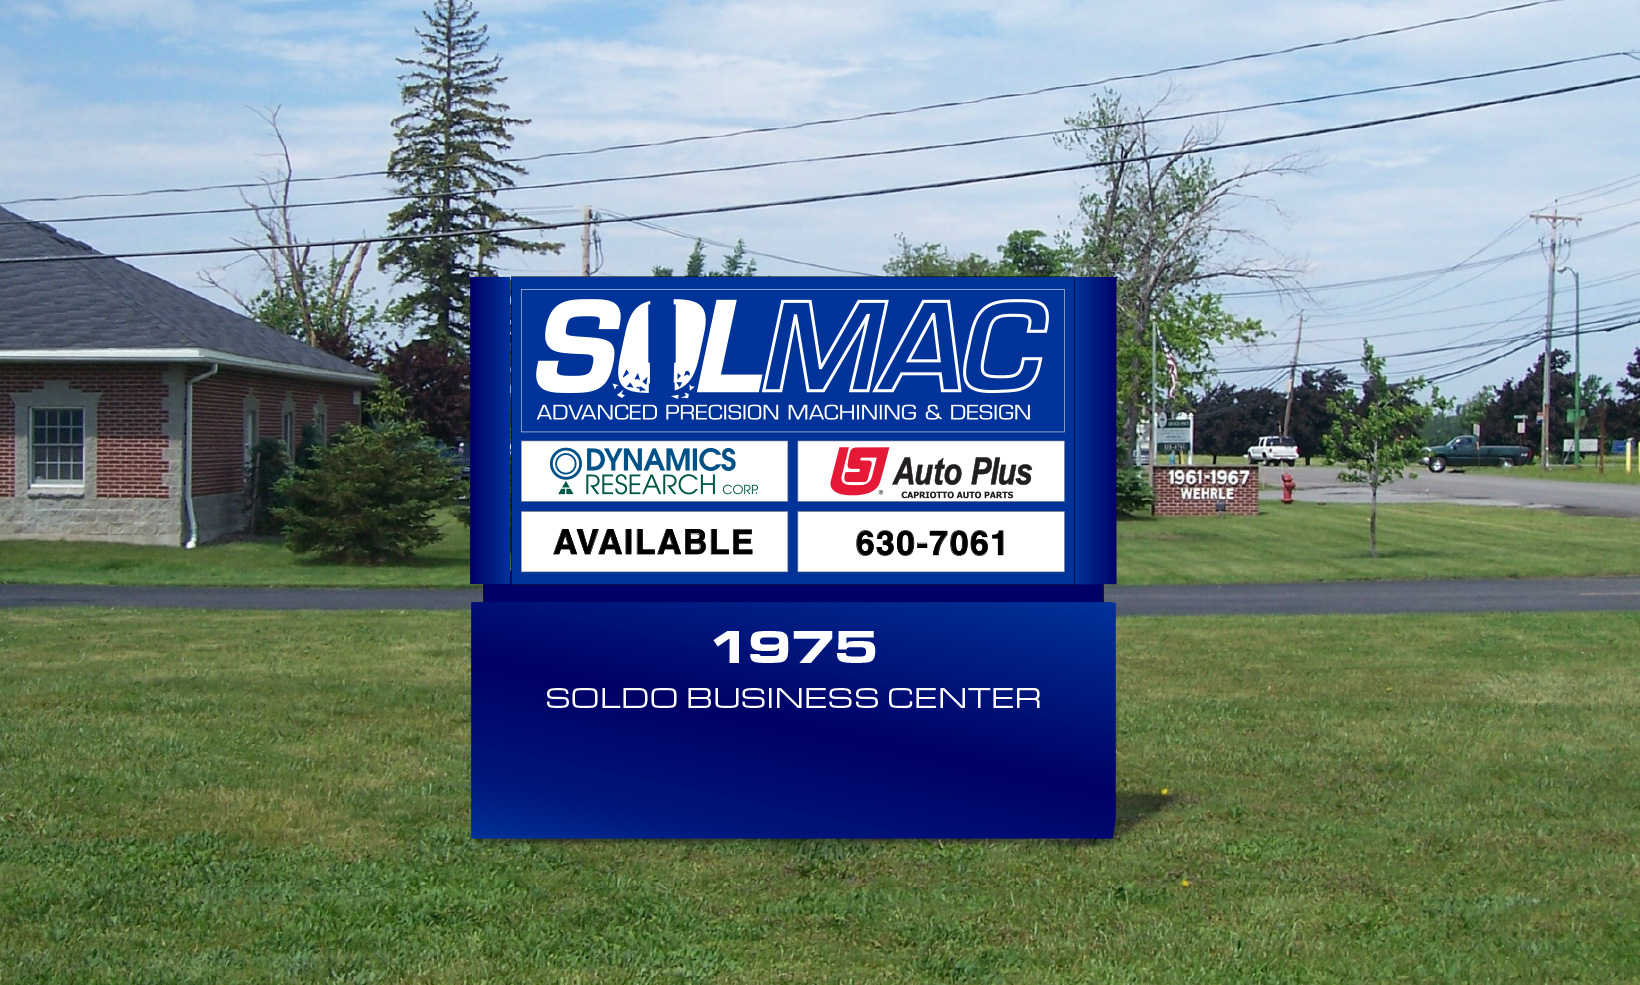 The Sol Mac monument sign doubles as a business directory, and is made of powder-coated aluminum in their brand blue color